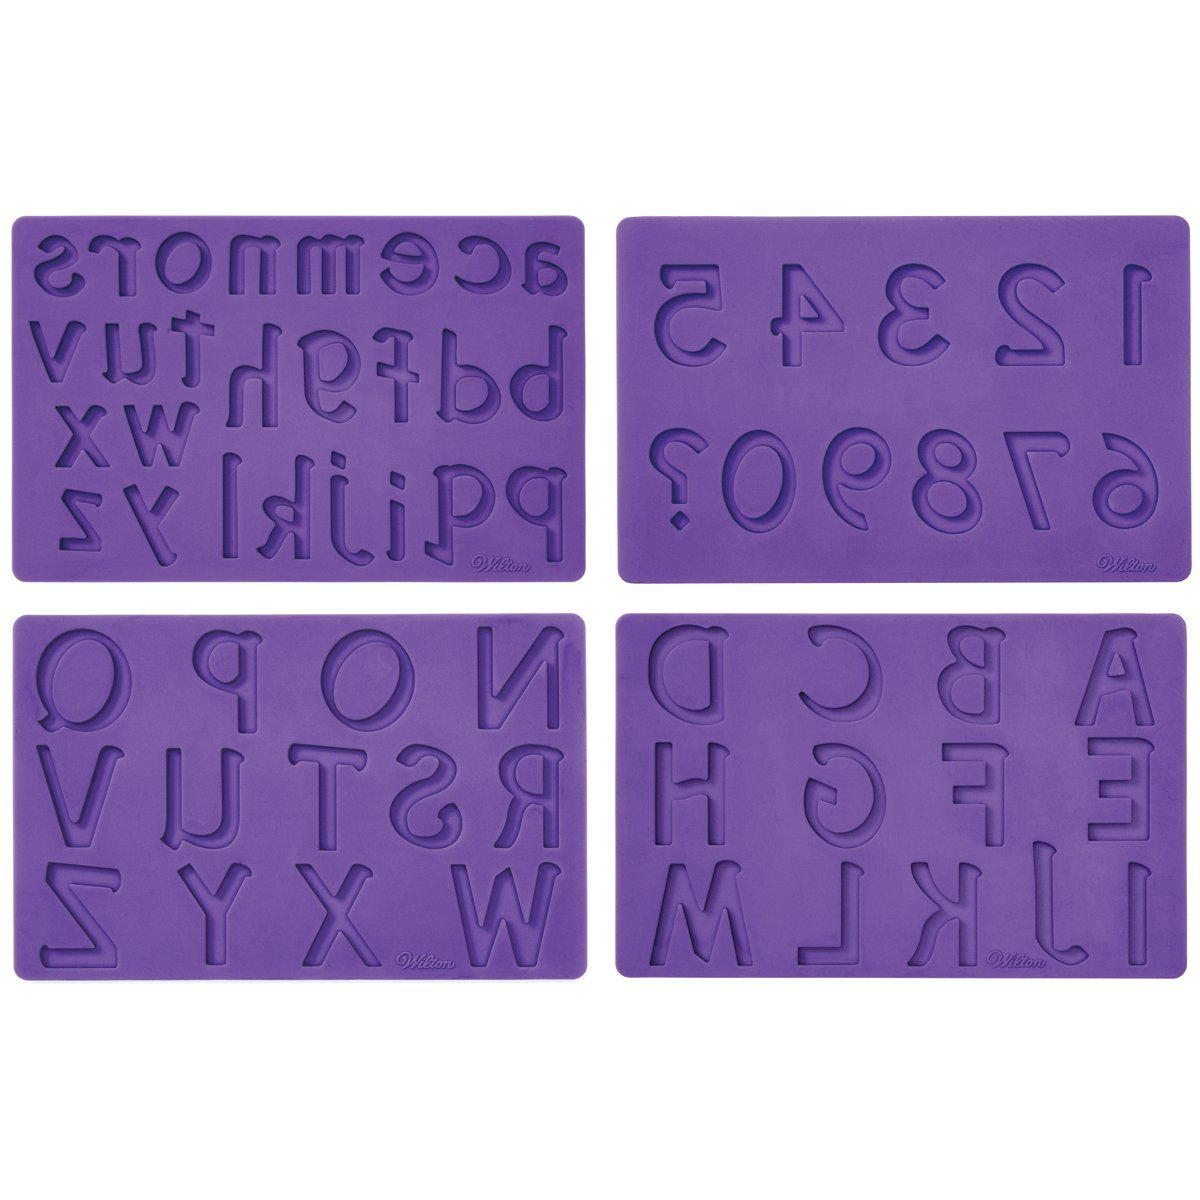 Wilton Silicone Letters and Numbers Fondant and Gum Paste Molds, 4-Piece - Cake Decorating Supplies by Wilton (Image #2)